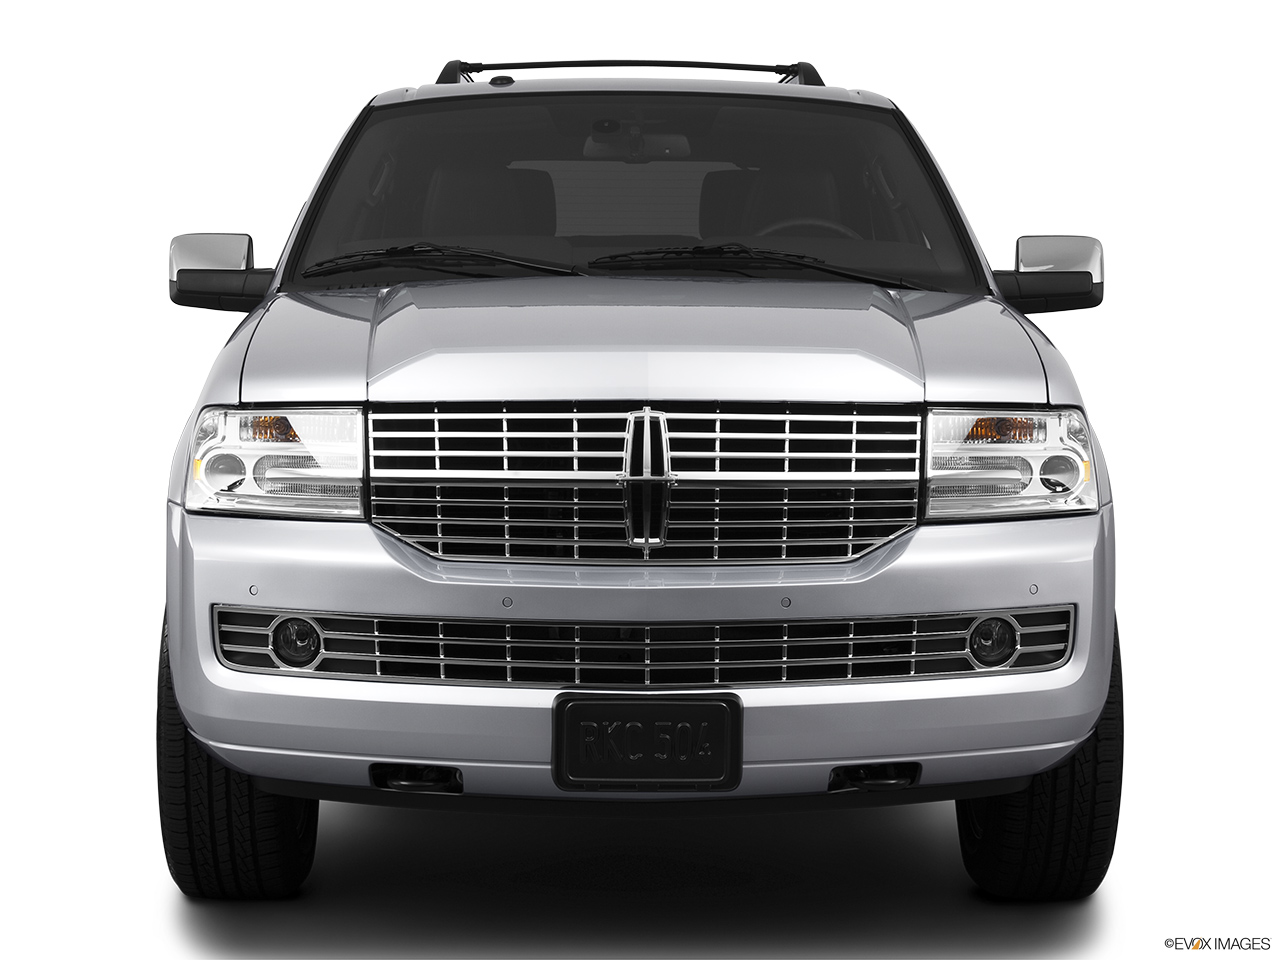 2013 Lincoln Navigator Base Low/wide front.